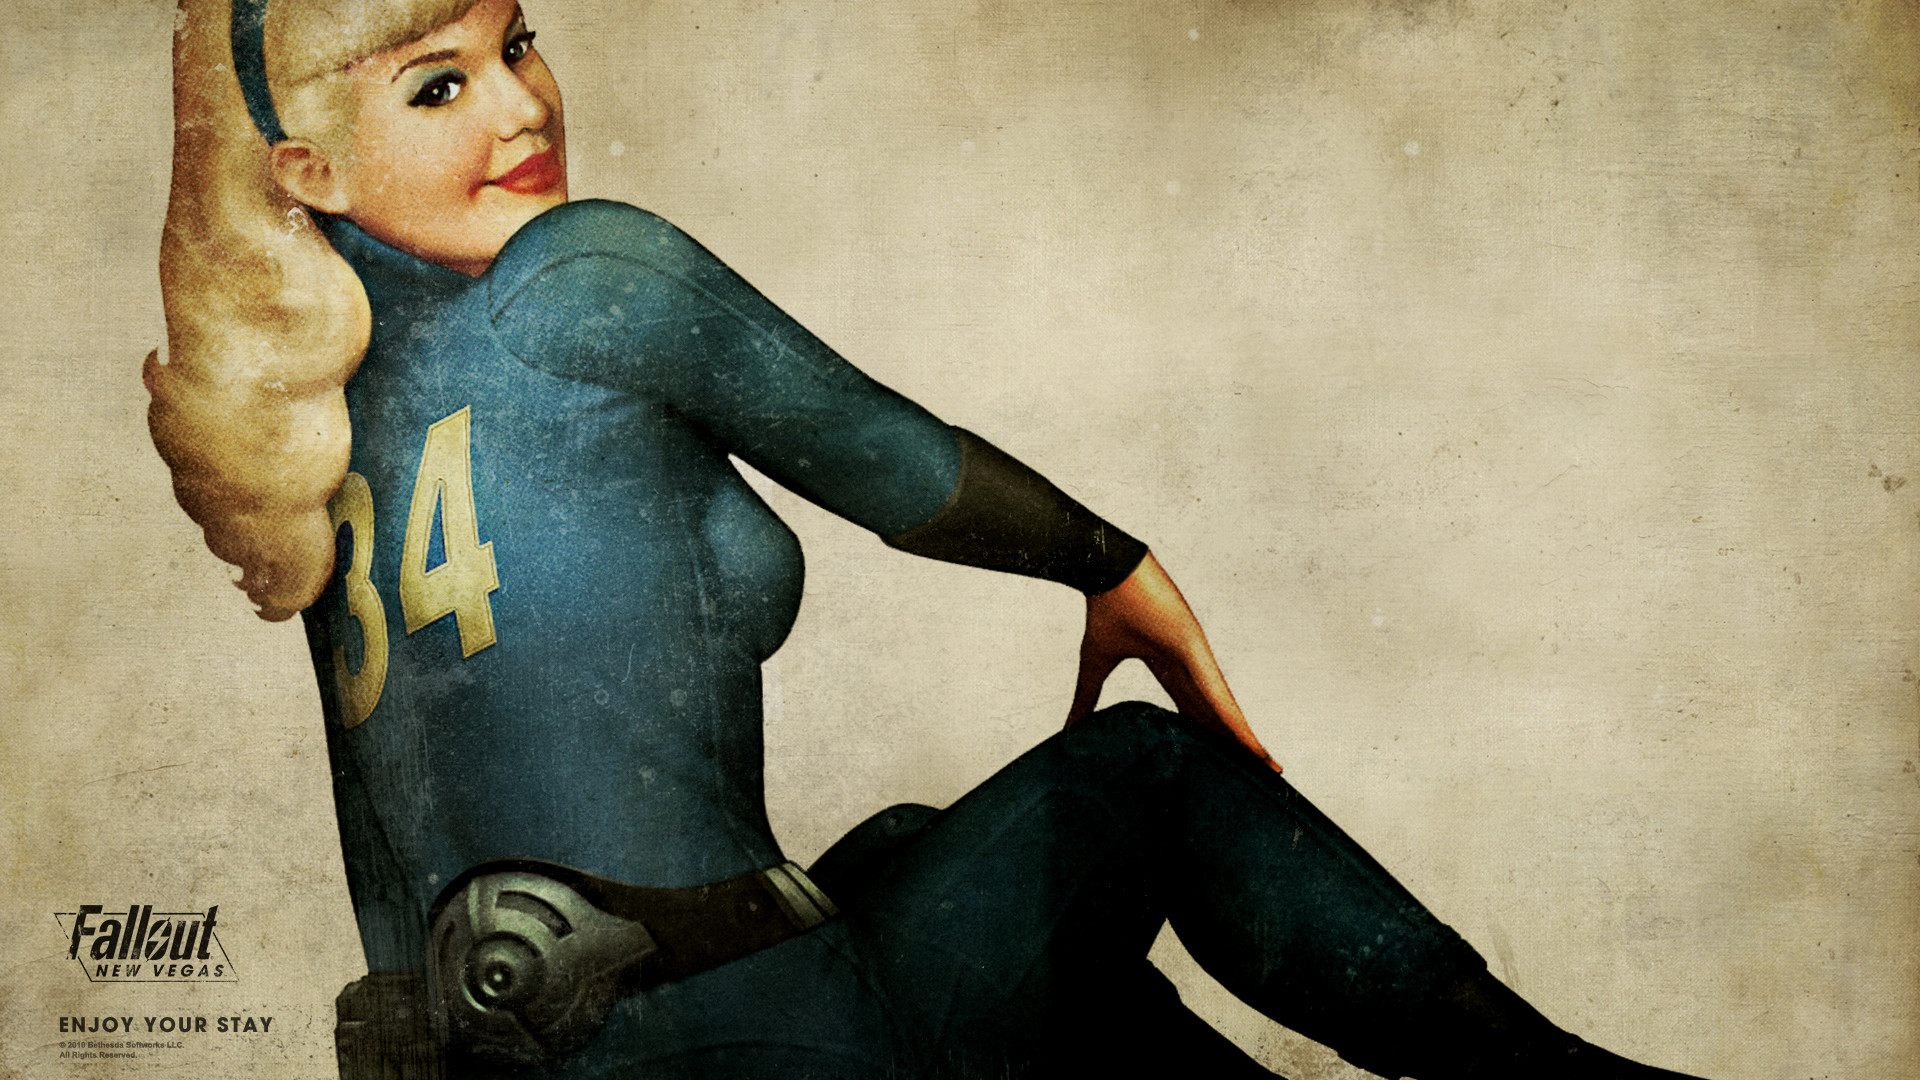 fallout new vegas wallpapers 1920 x 1080 hd wallpapers 1080p .